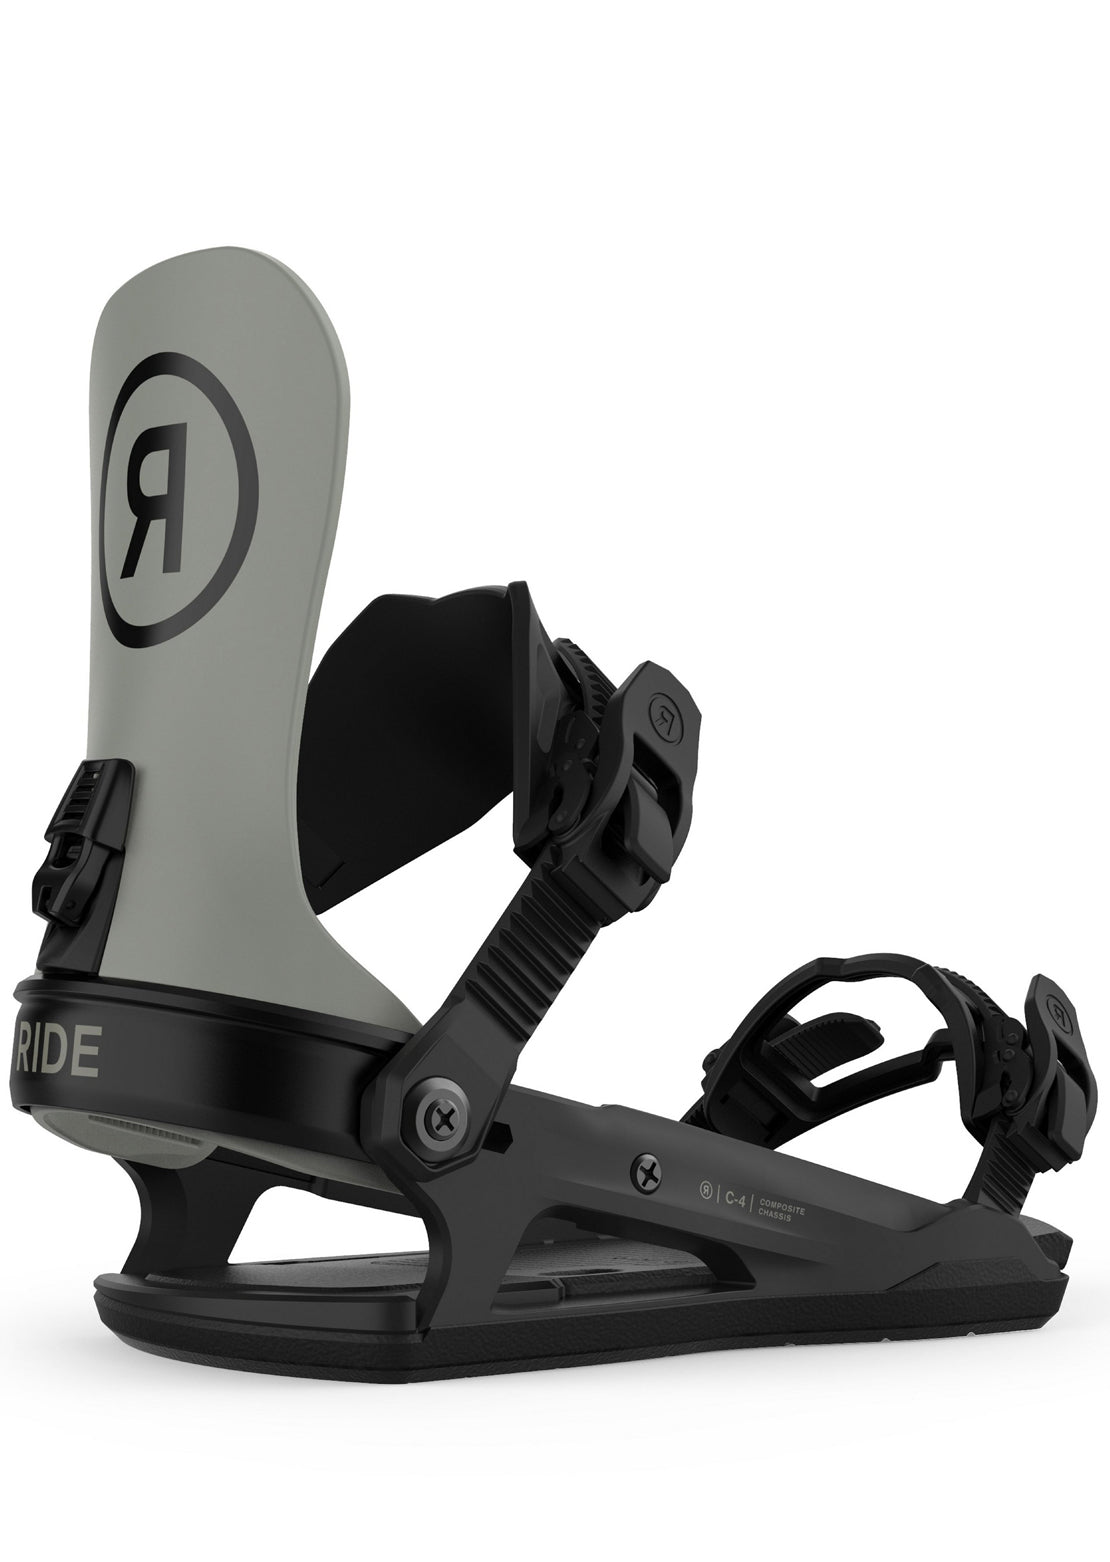 Ride Men's C-4 Snowboard Bindings Moss